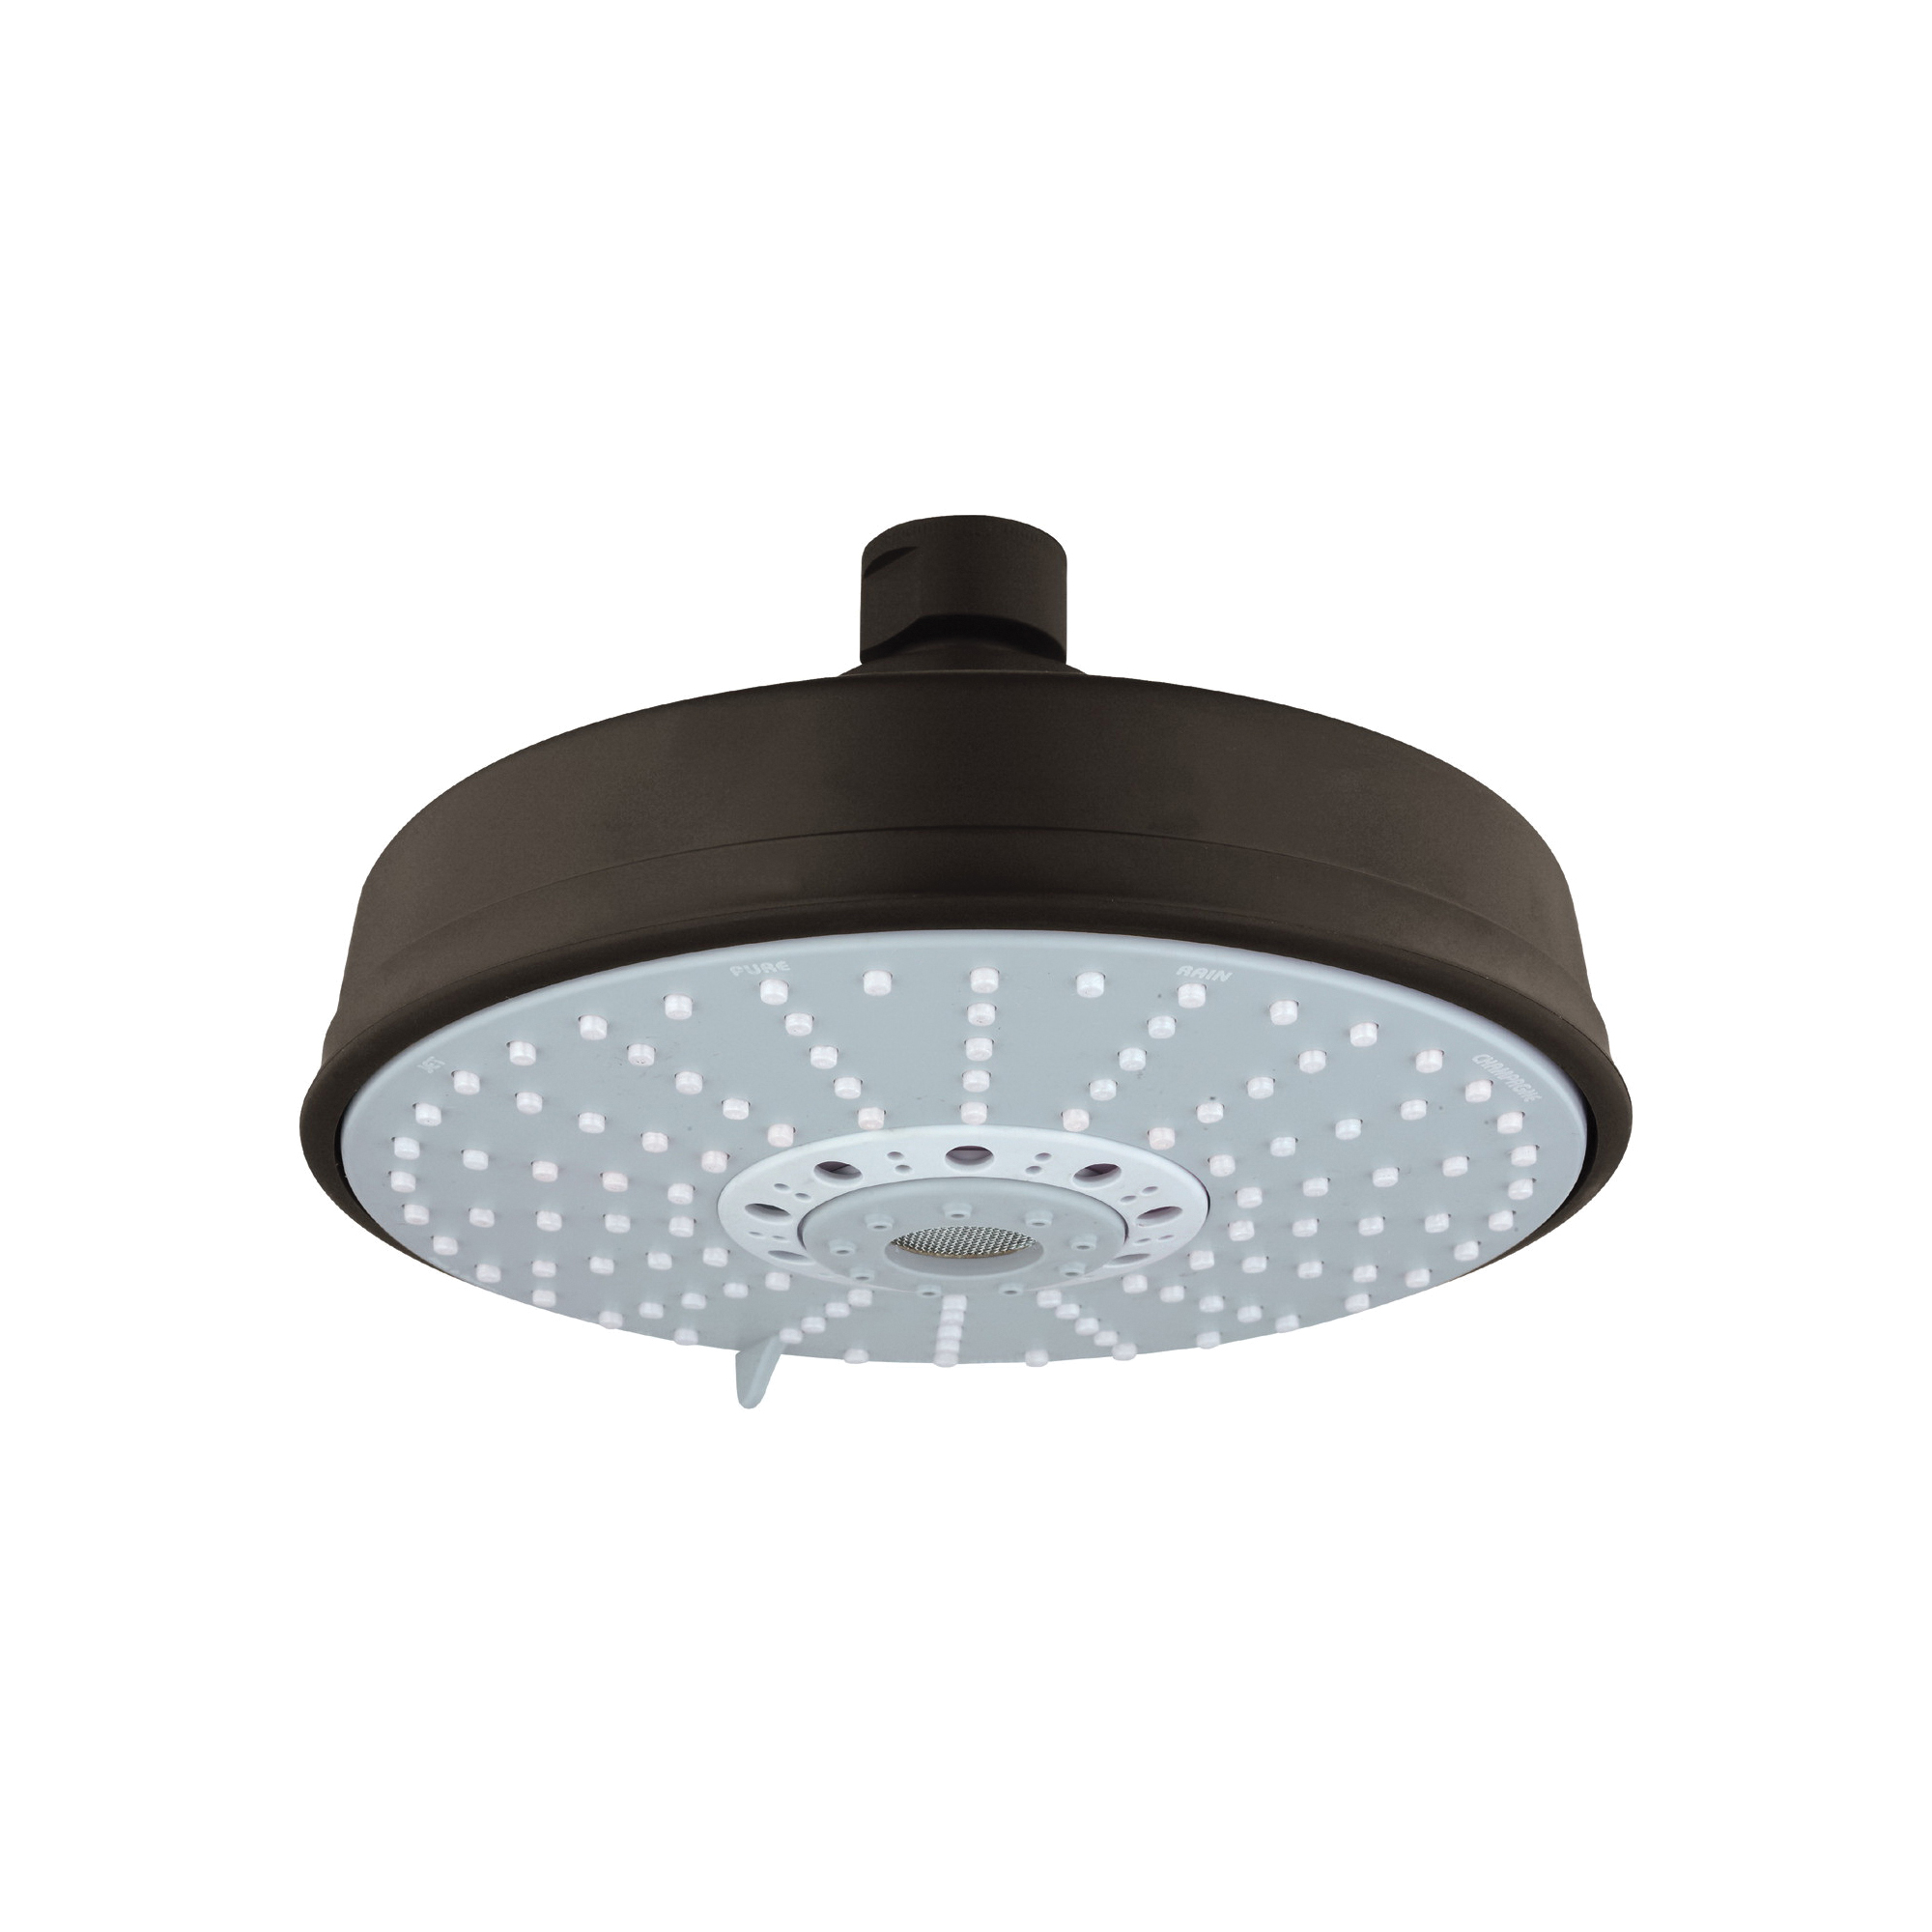 GROHE 27130ZB0 Rainshower® Rustic 160 Shower Head, 2.5 gpm, 4 Sprays, Ceiling Mount, 6-5/16 in Dia Head, Import